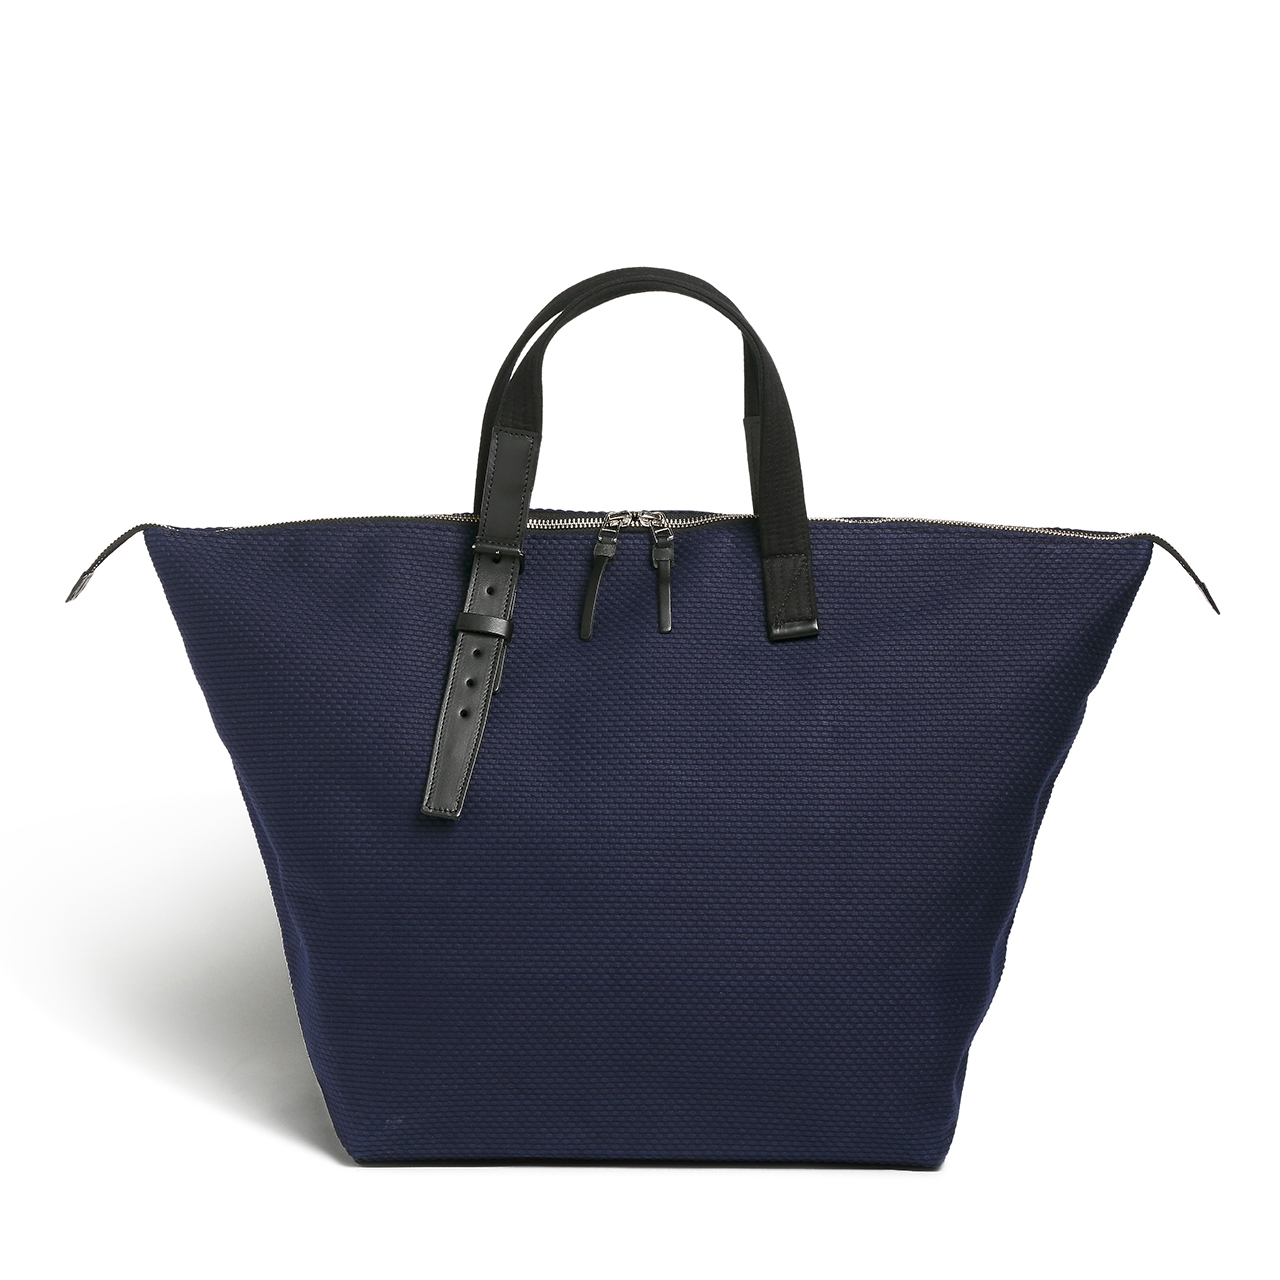 CaBas N°30 Bowler Bag (Navy/Black)